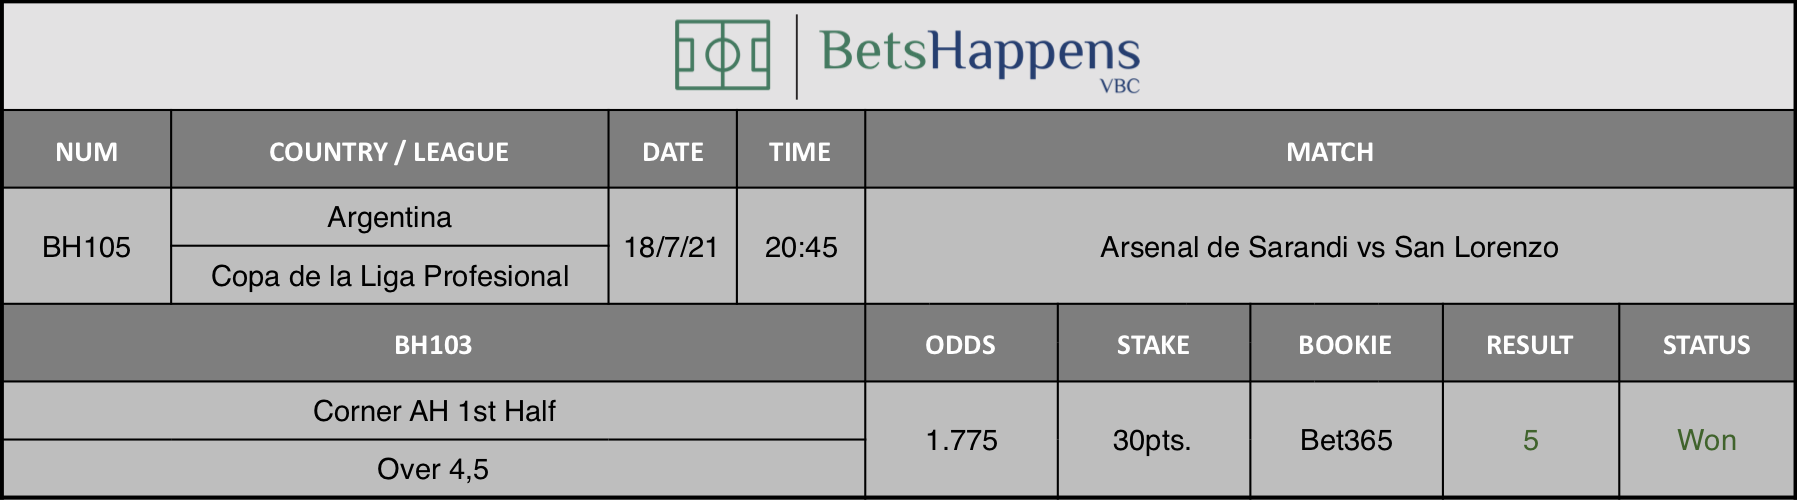 Results of our advice for the Arsenal de Sarandi vs San Lorenzo match in which Corner AH 1st Half Over 4,5 is recommended.